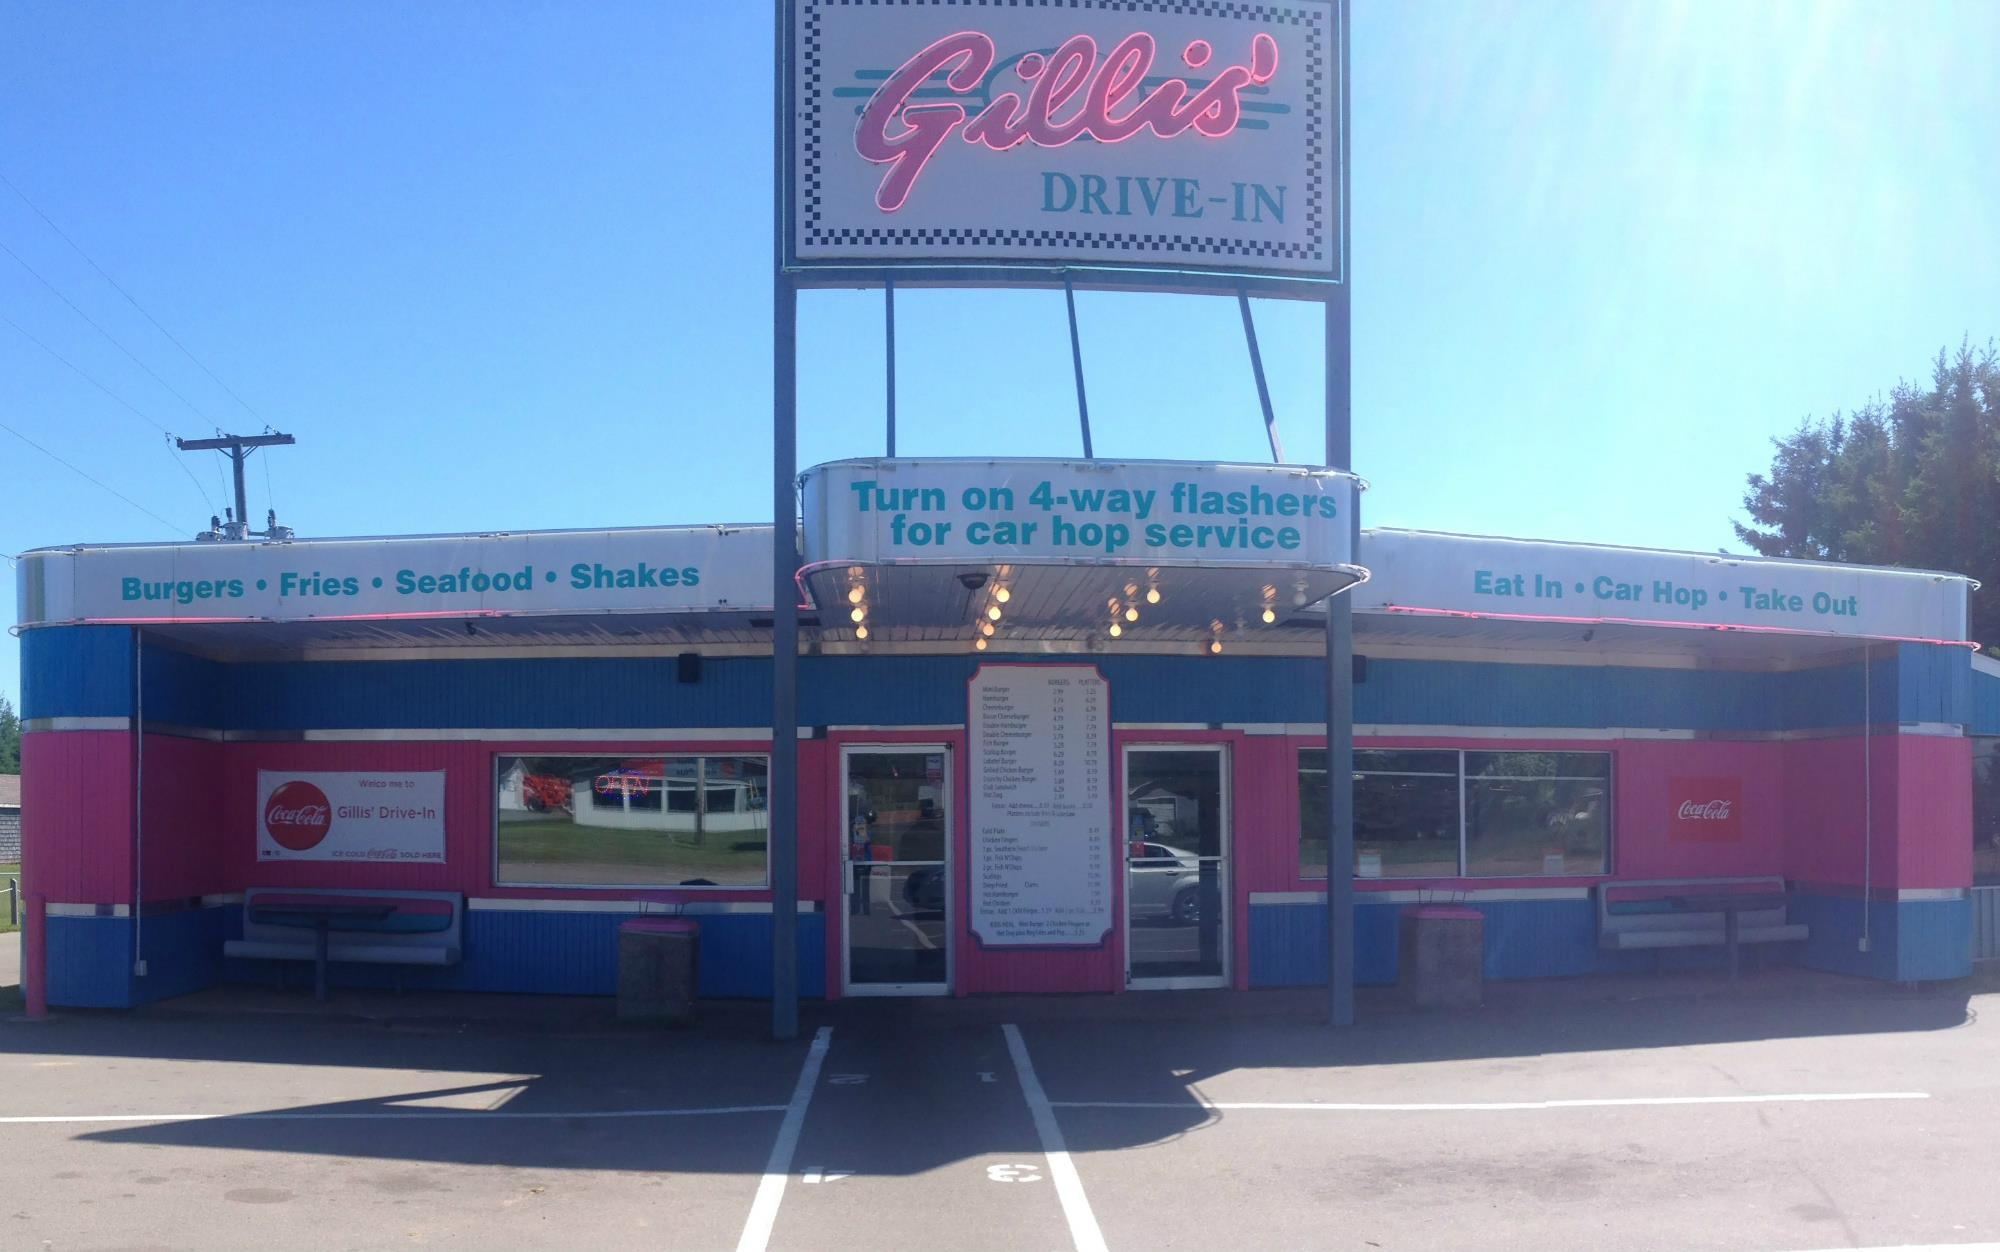 Gillis' Drive In Restaurant is a 60's style drive in, and one of the last car hops in Canada, offering curb service, dine-in or take-out